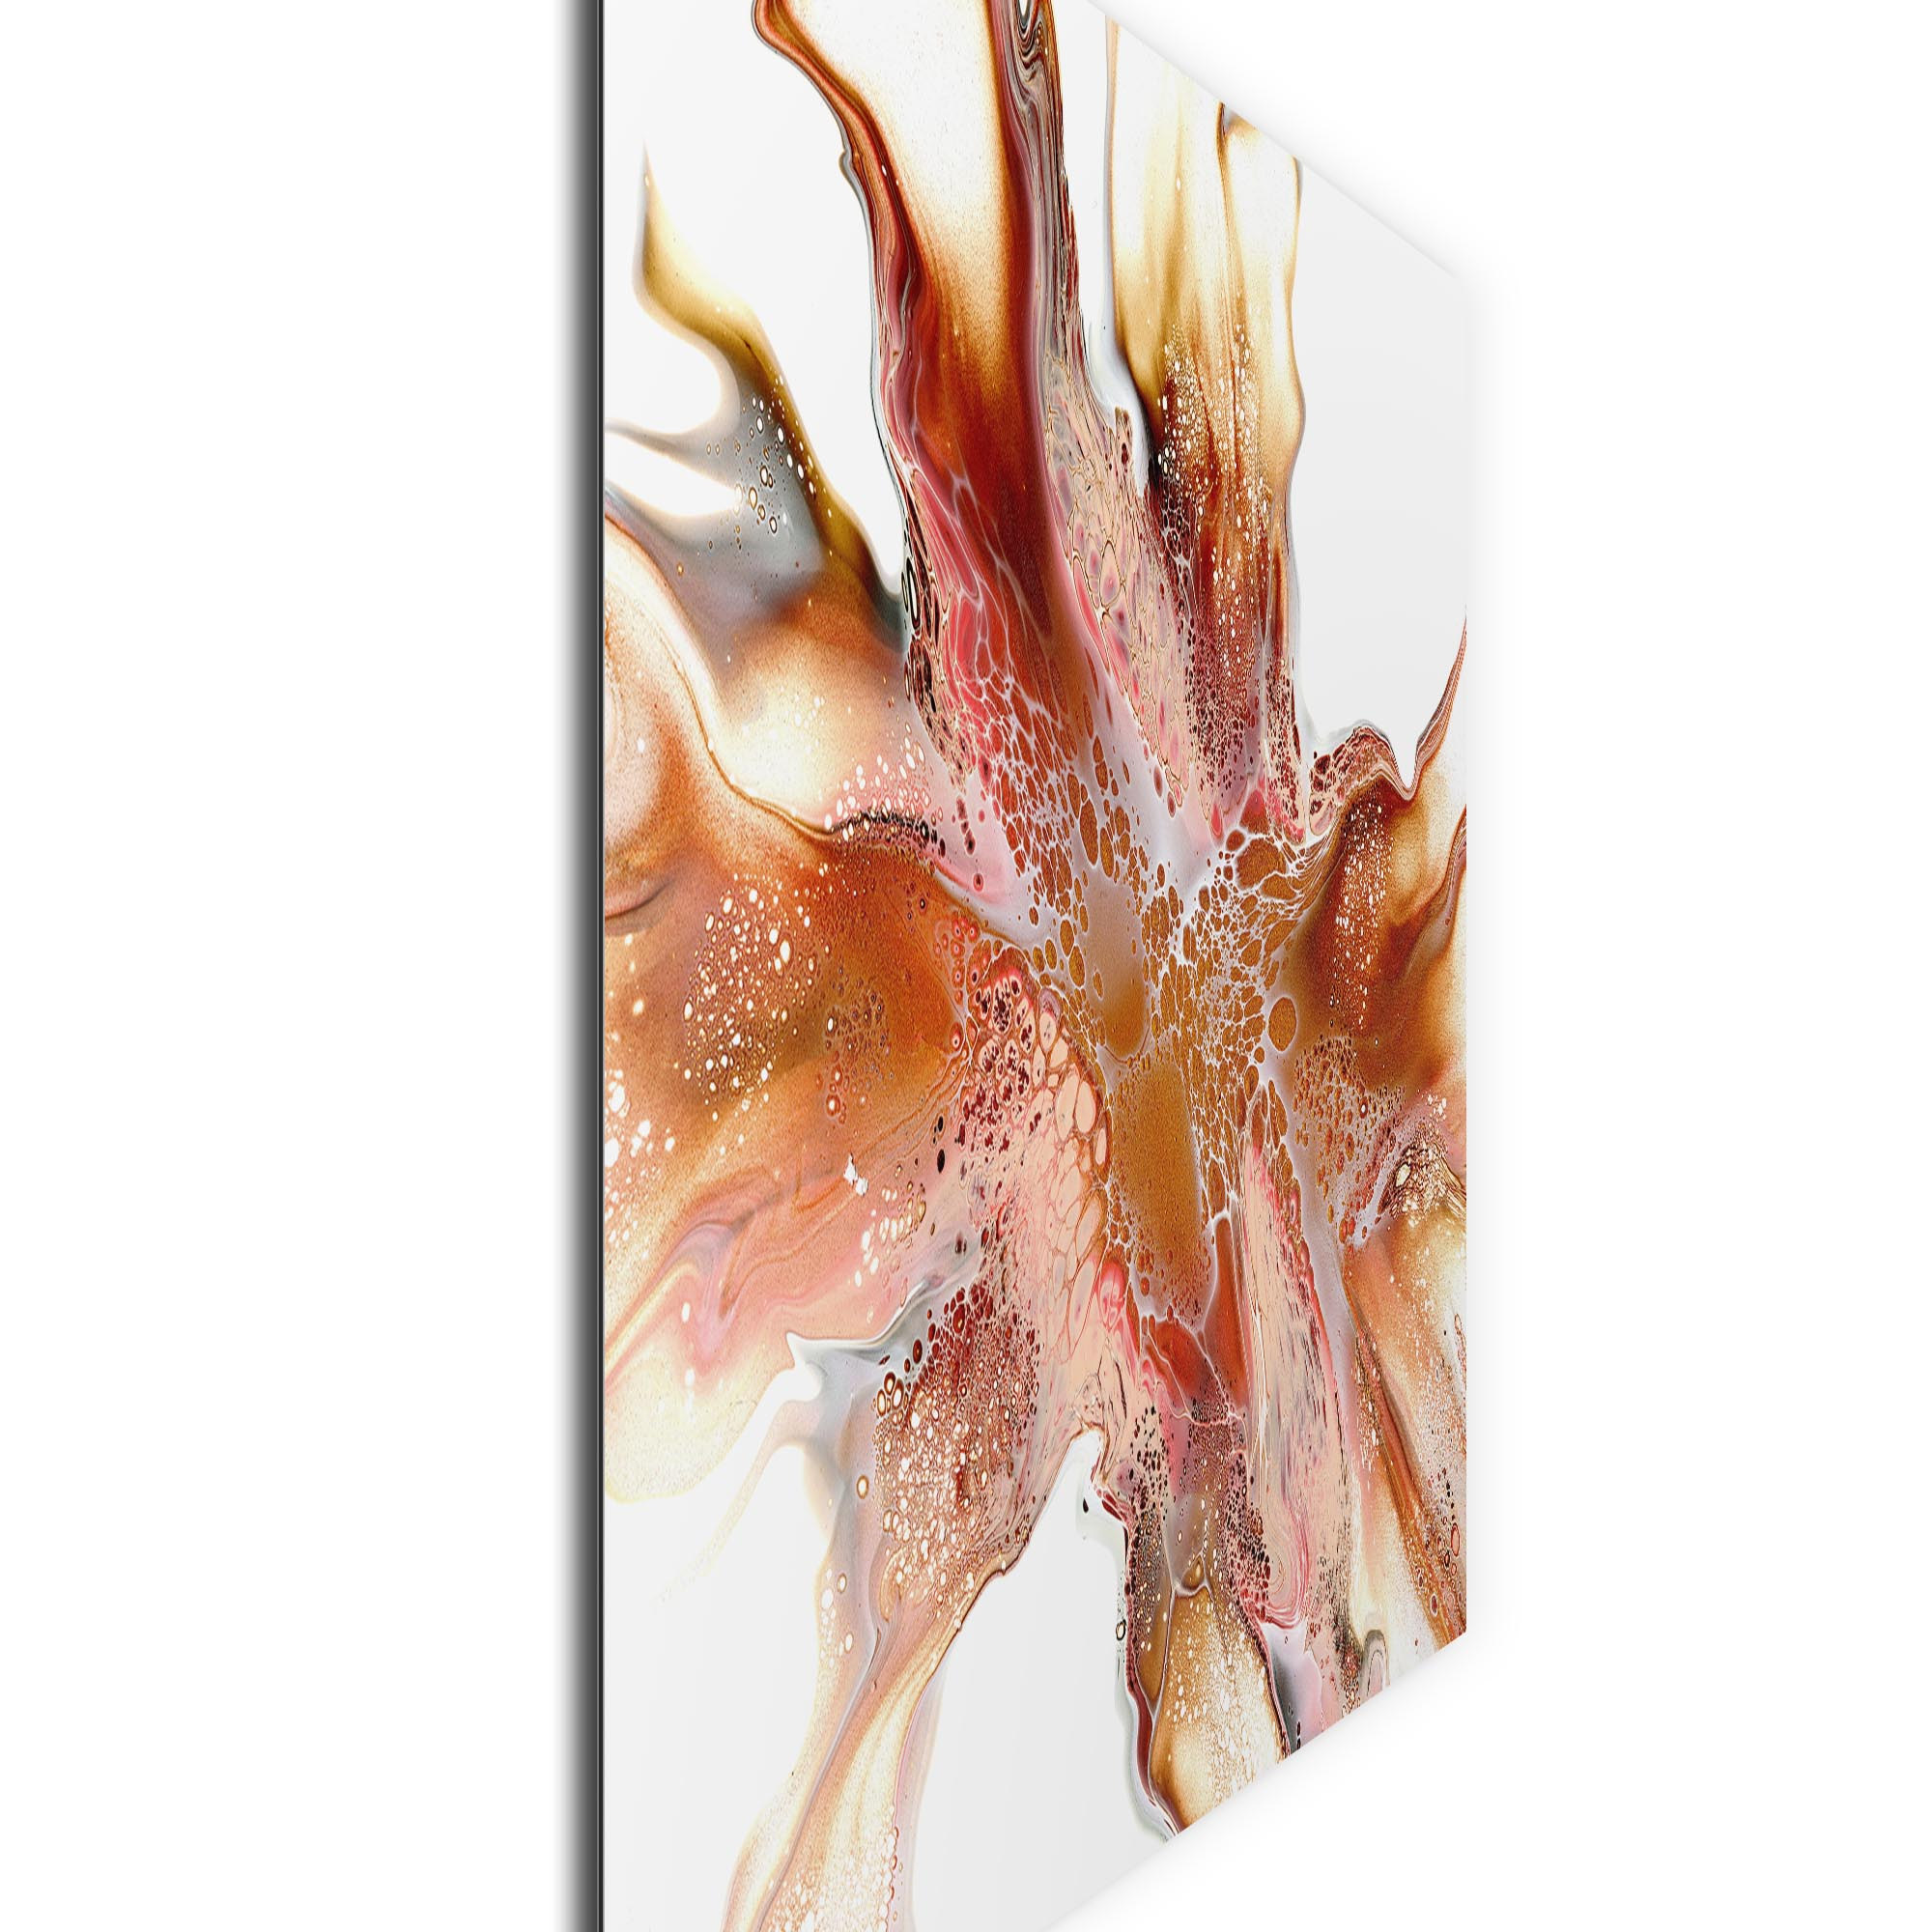 Expansion by Elana Reiter - Abstract Wall Art, Modern Home Decor (32in x 24in) - Image 2